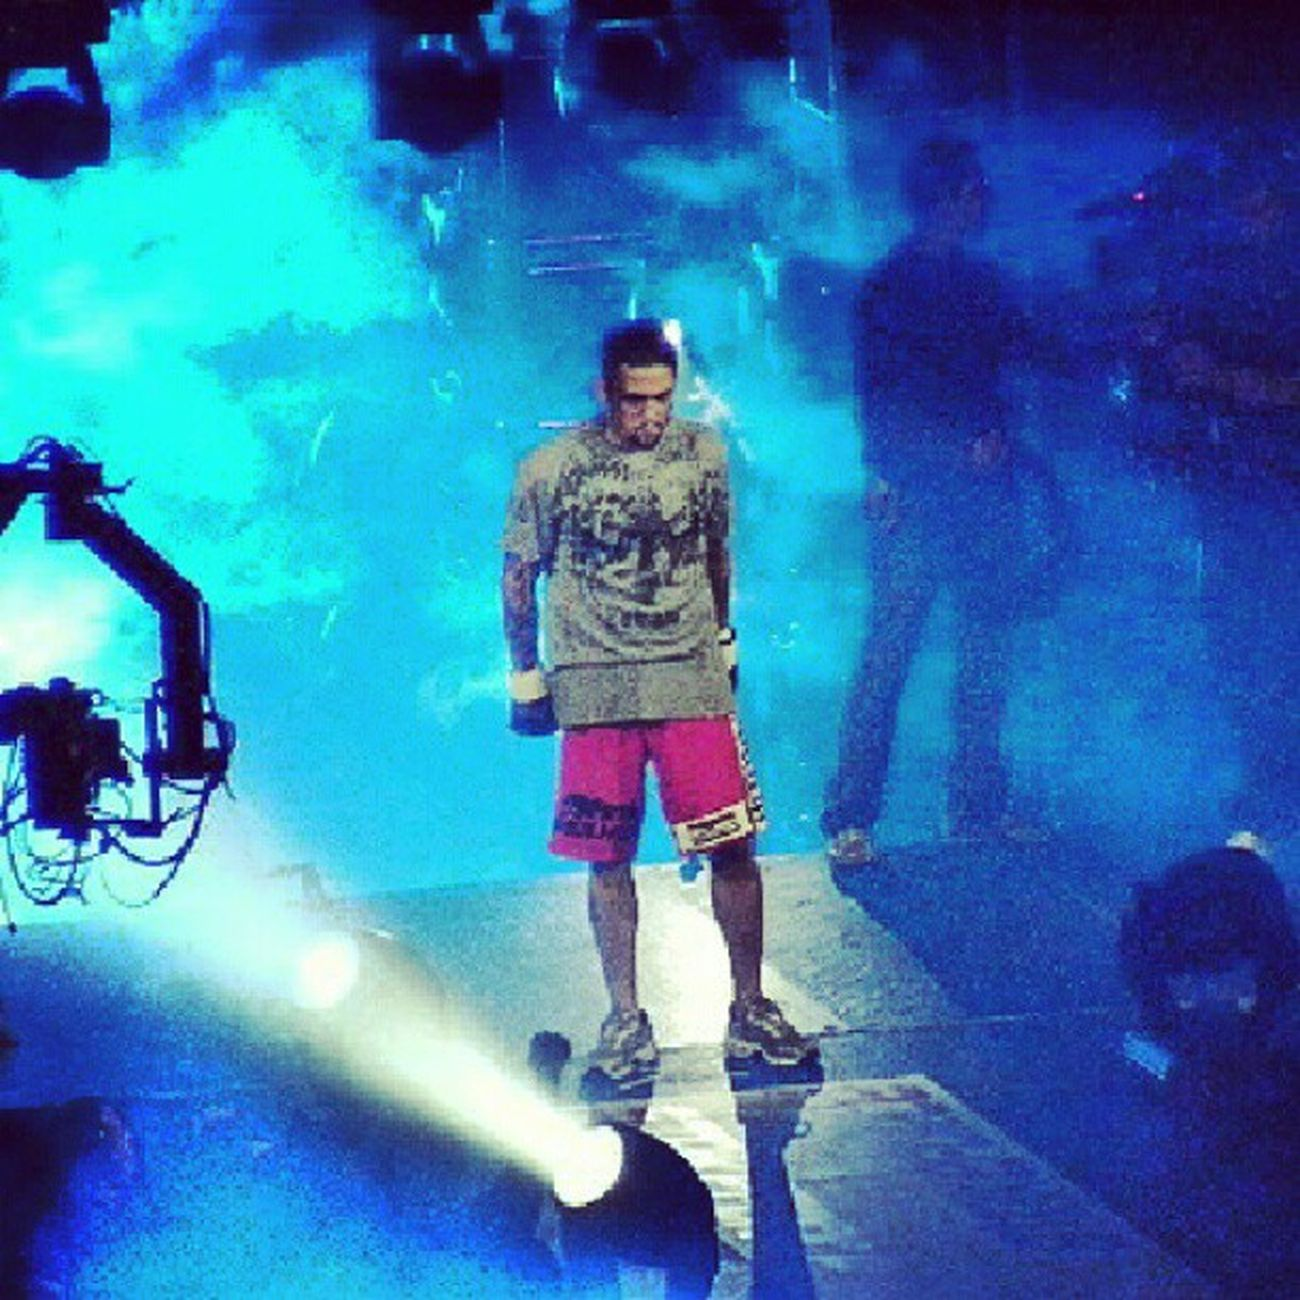 Sobral vs Southworth Strikeforce MMA Renatobabalusobral OldPics